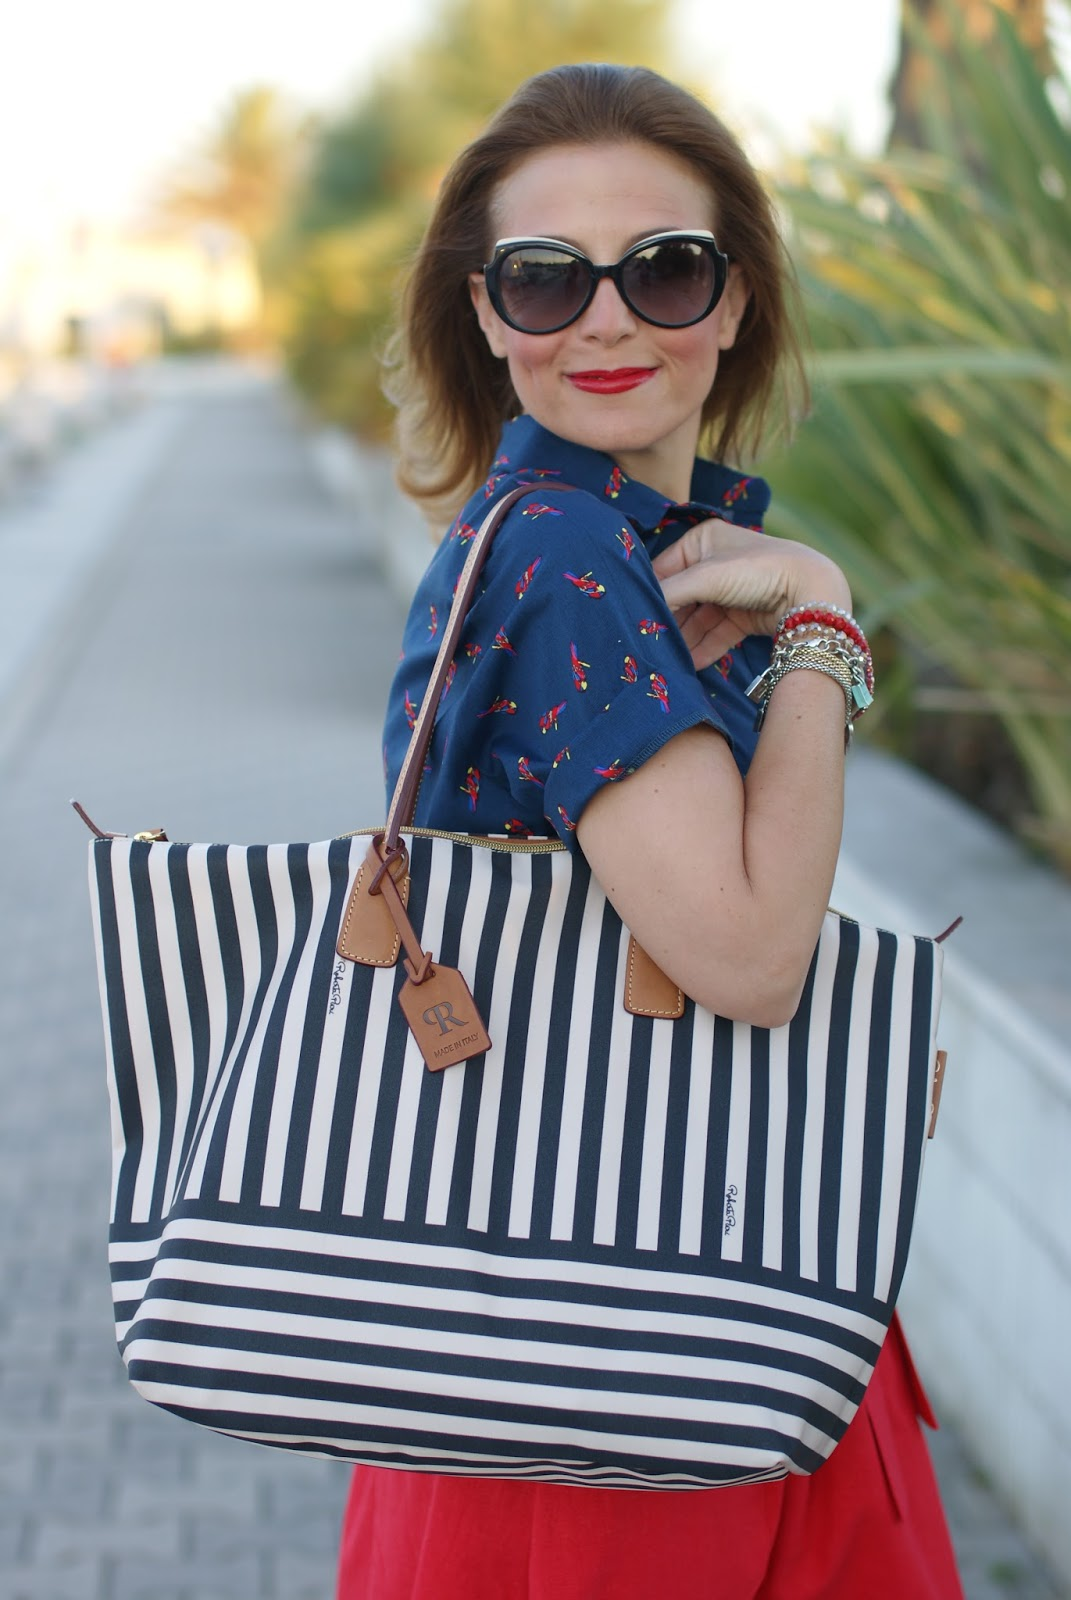 Roberta Pieri Robertina collection, black and white striped tote on Fashion and Cookies fashion blog, fashion blogger style